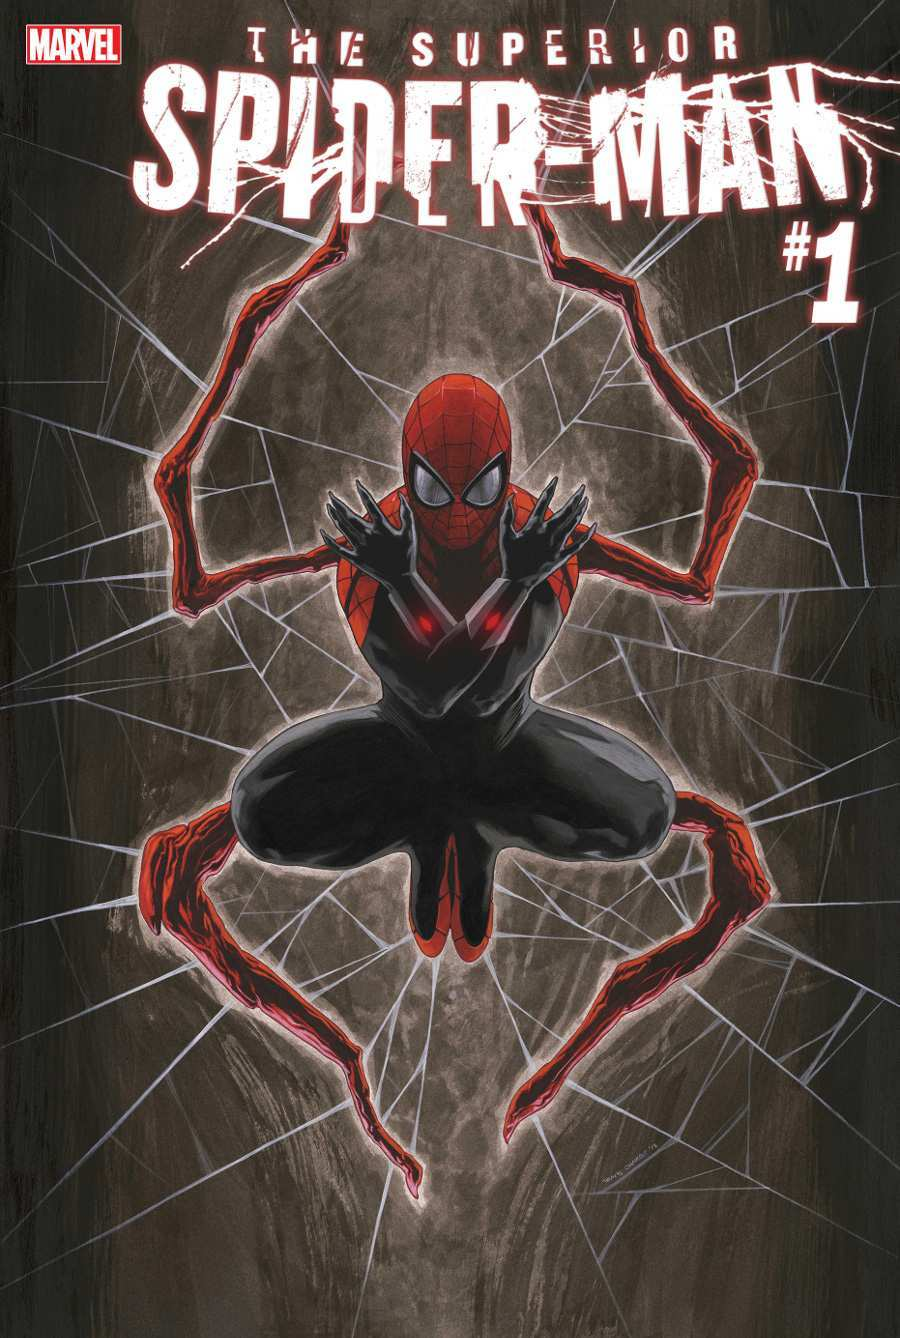 superior-spider-man-1-1132440.jpeg